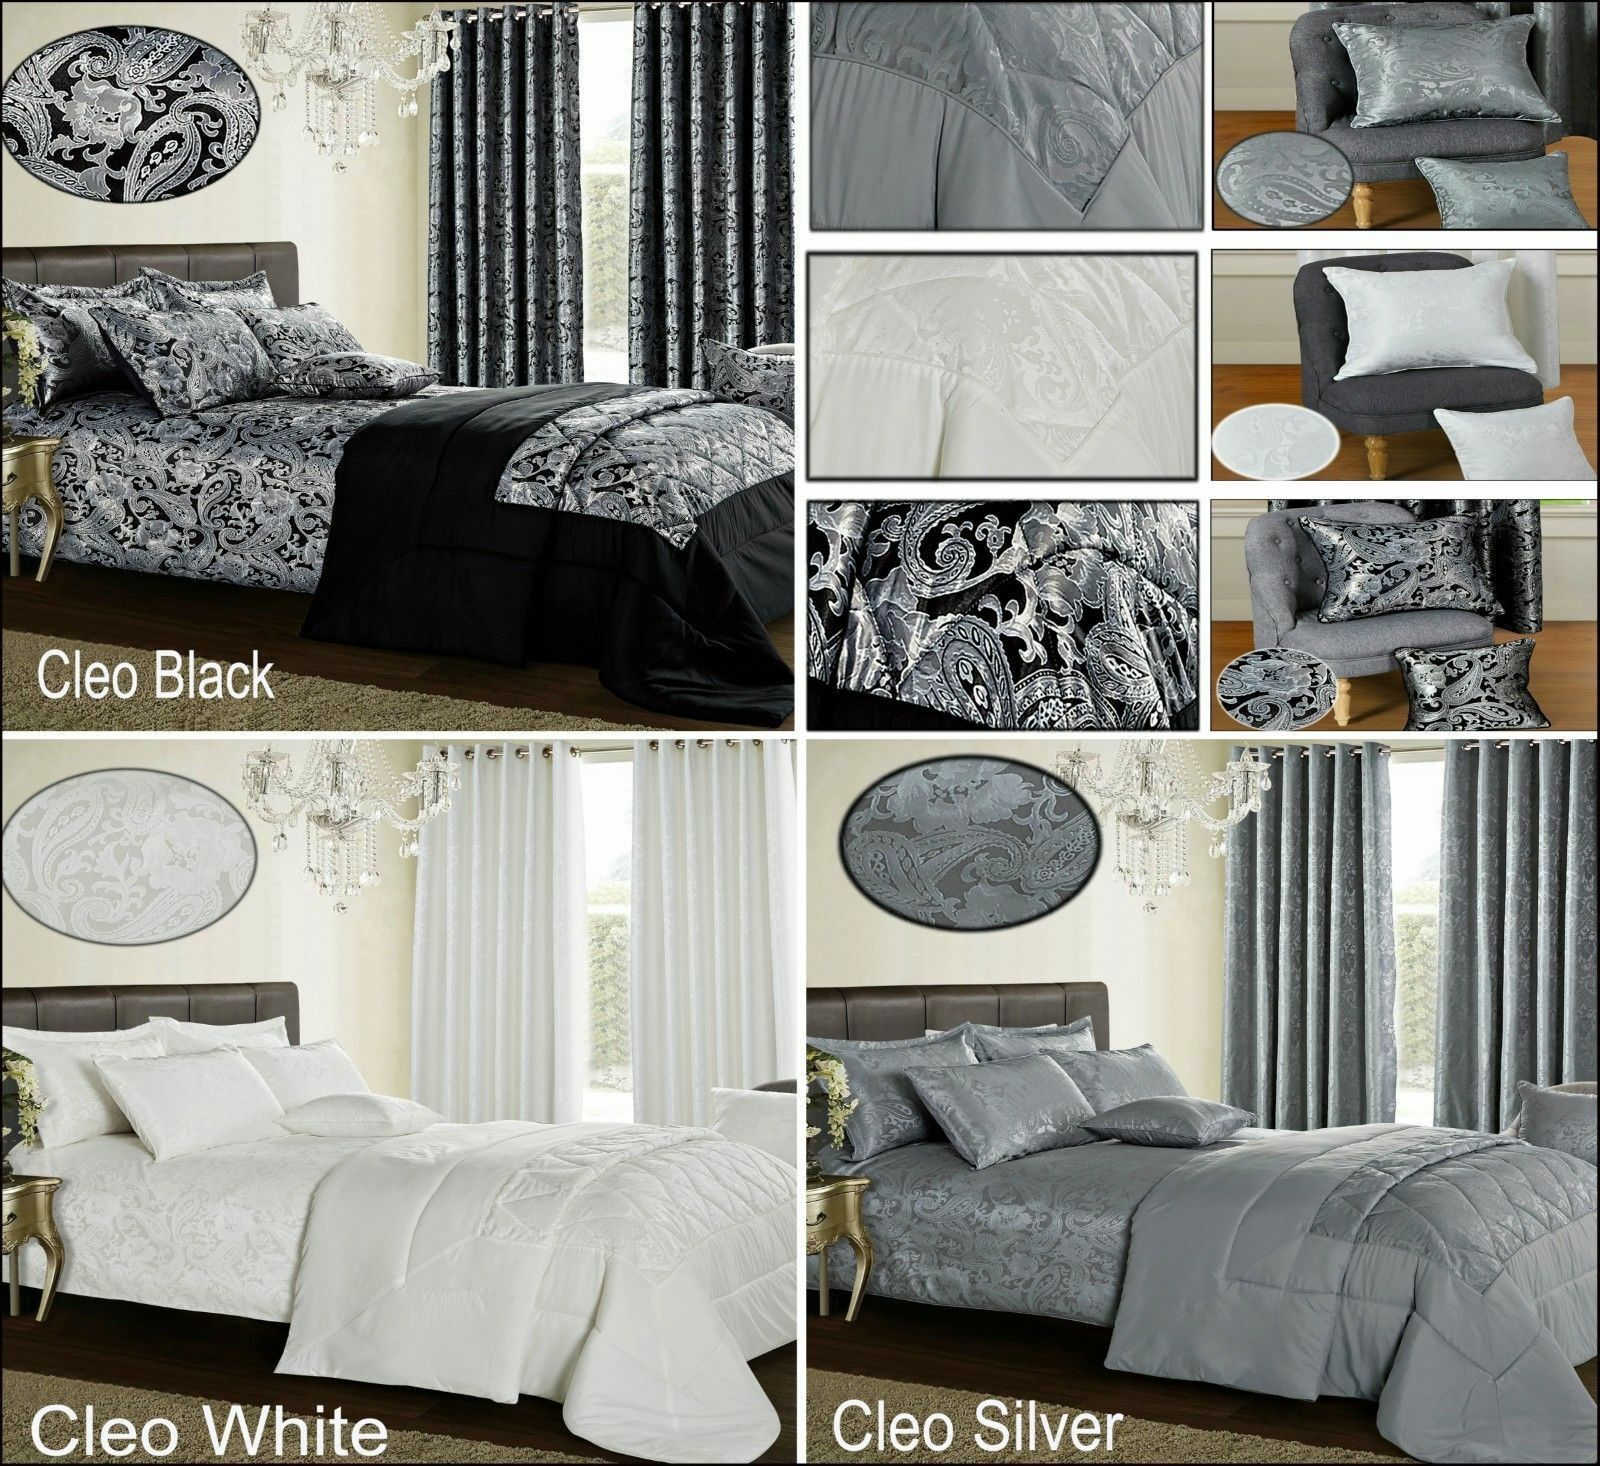 3Piece Jacquard Quilted Bedspread Comforter Bedding Set Single Double Super King